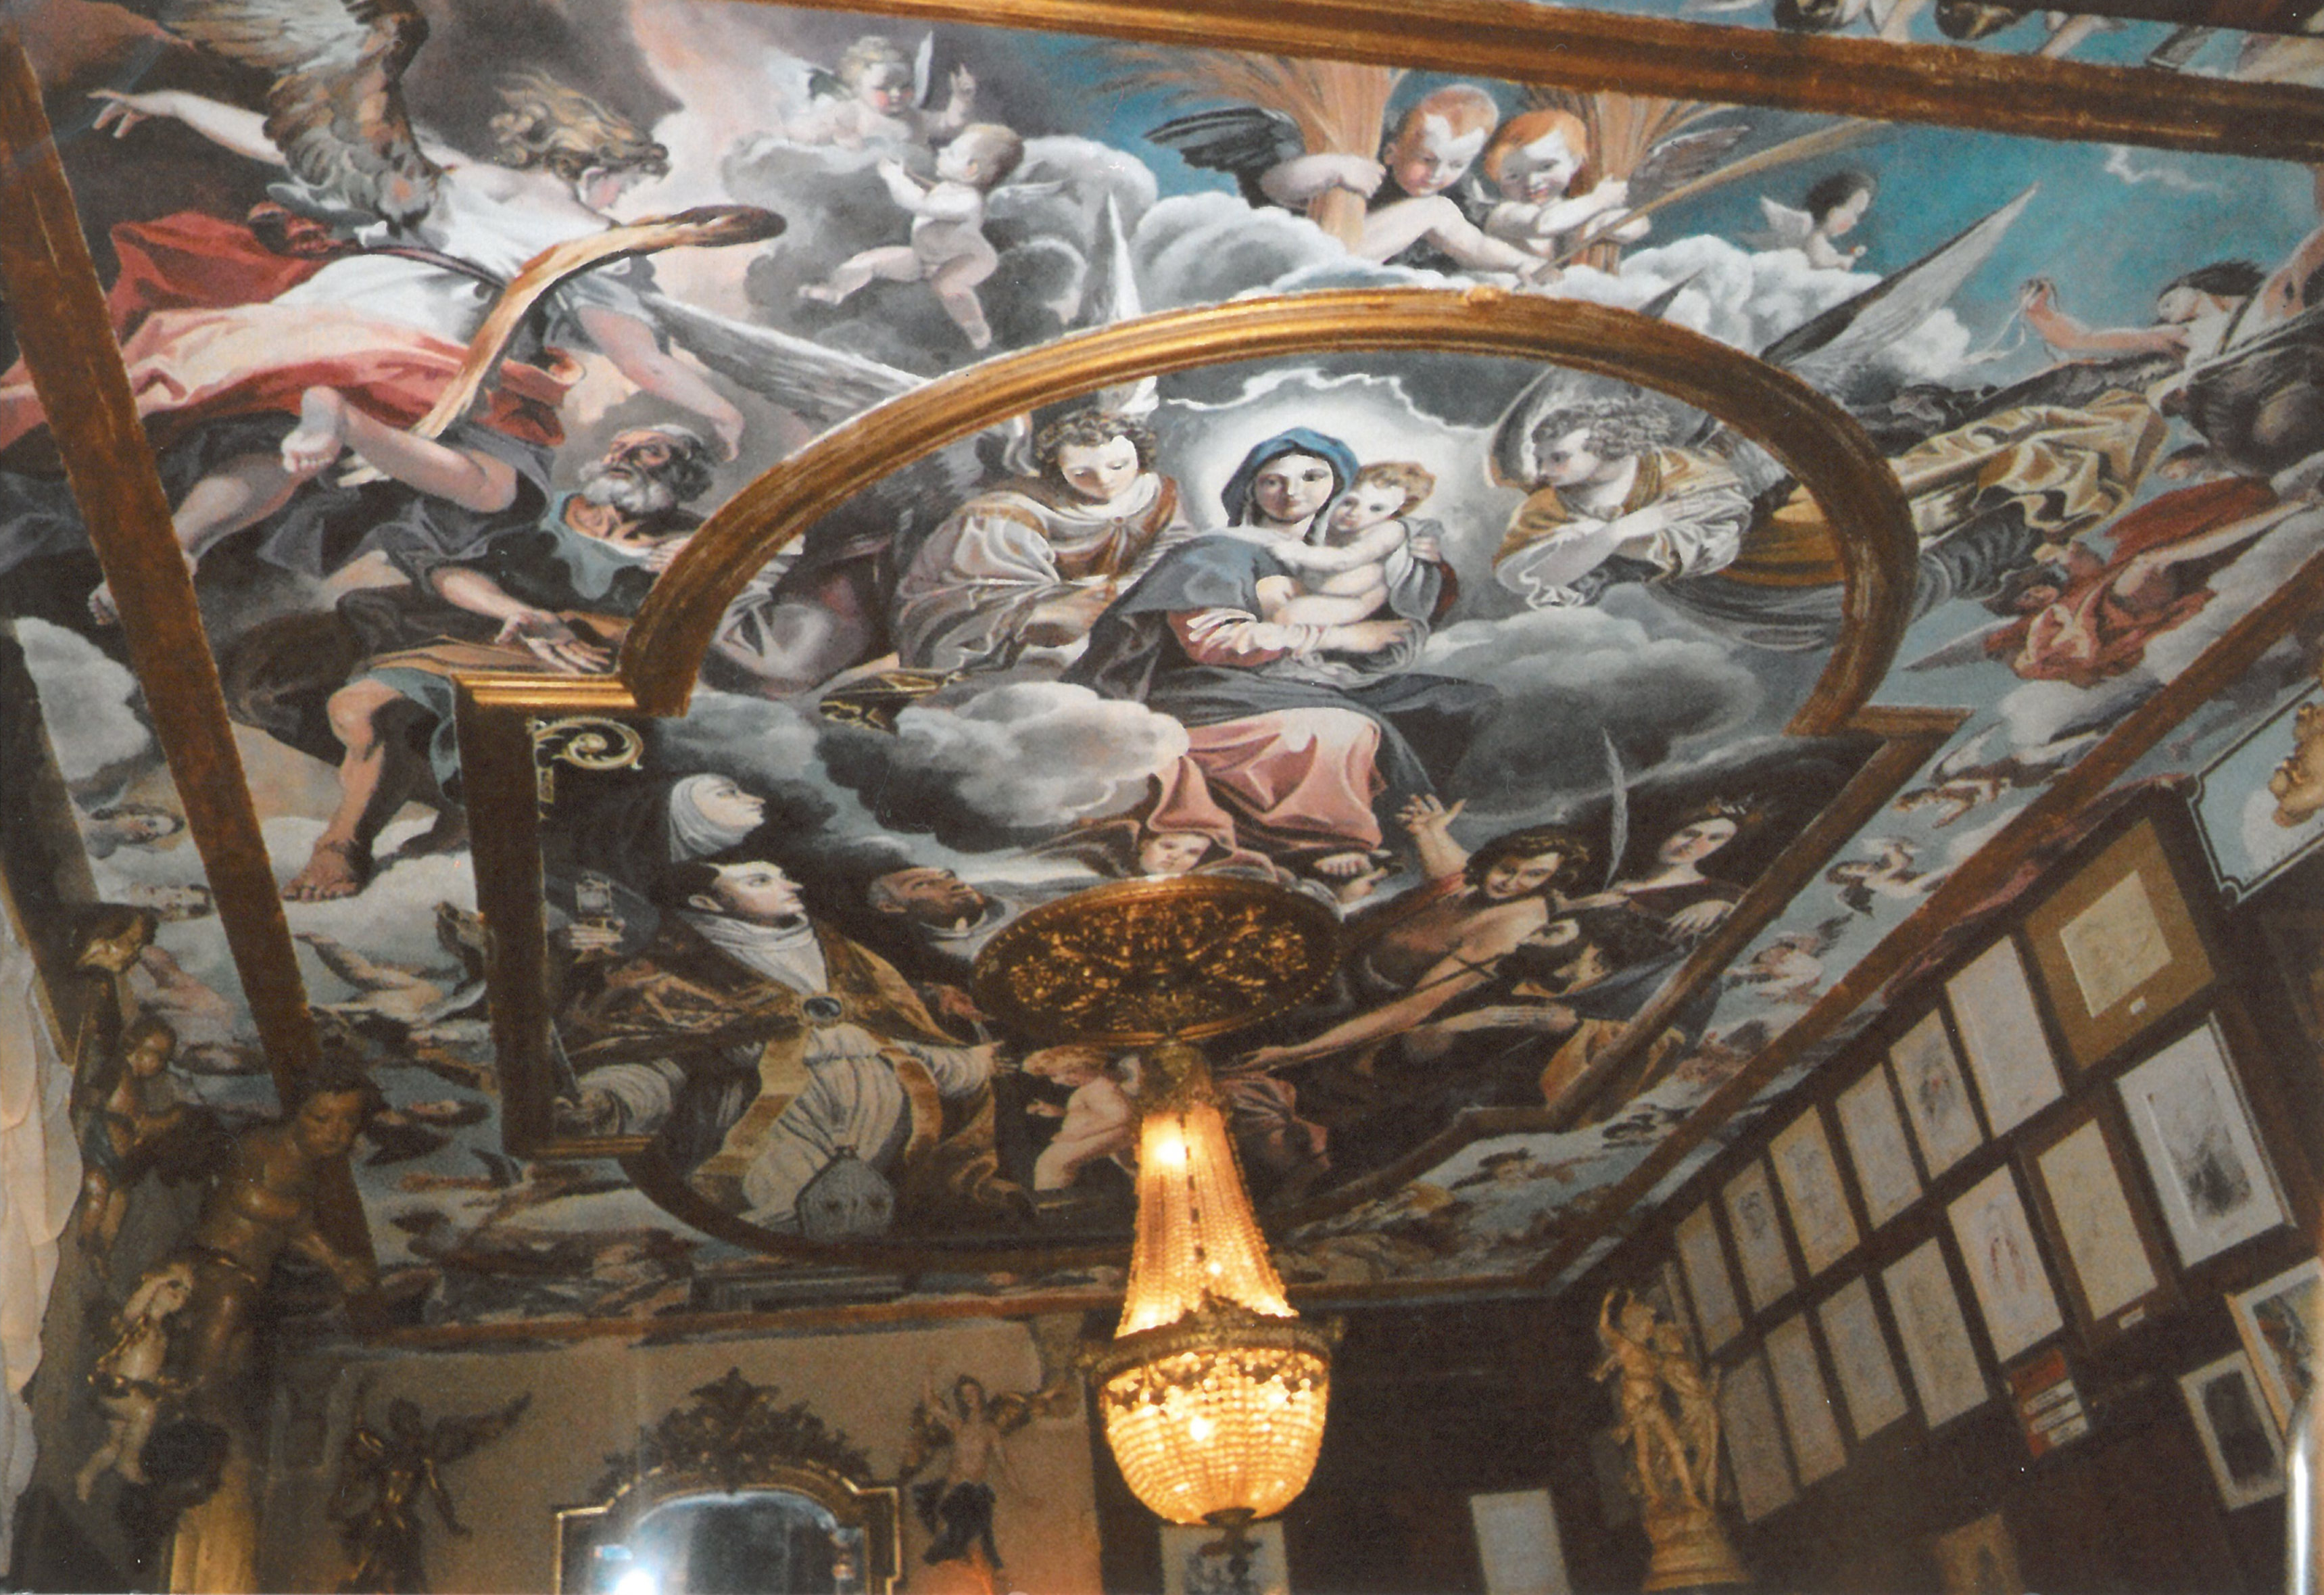 Ceiling mural in the restaurant Napoli Da Gerardo, Zurich,  Switzerland